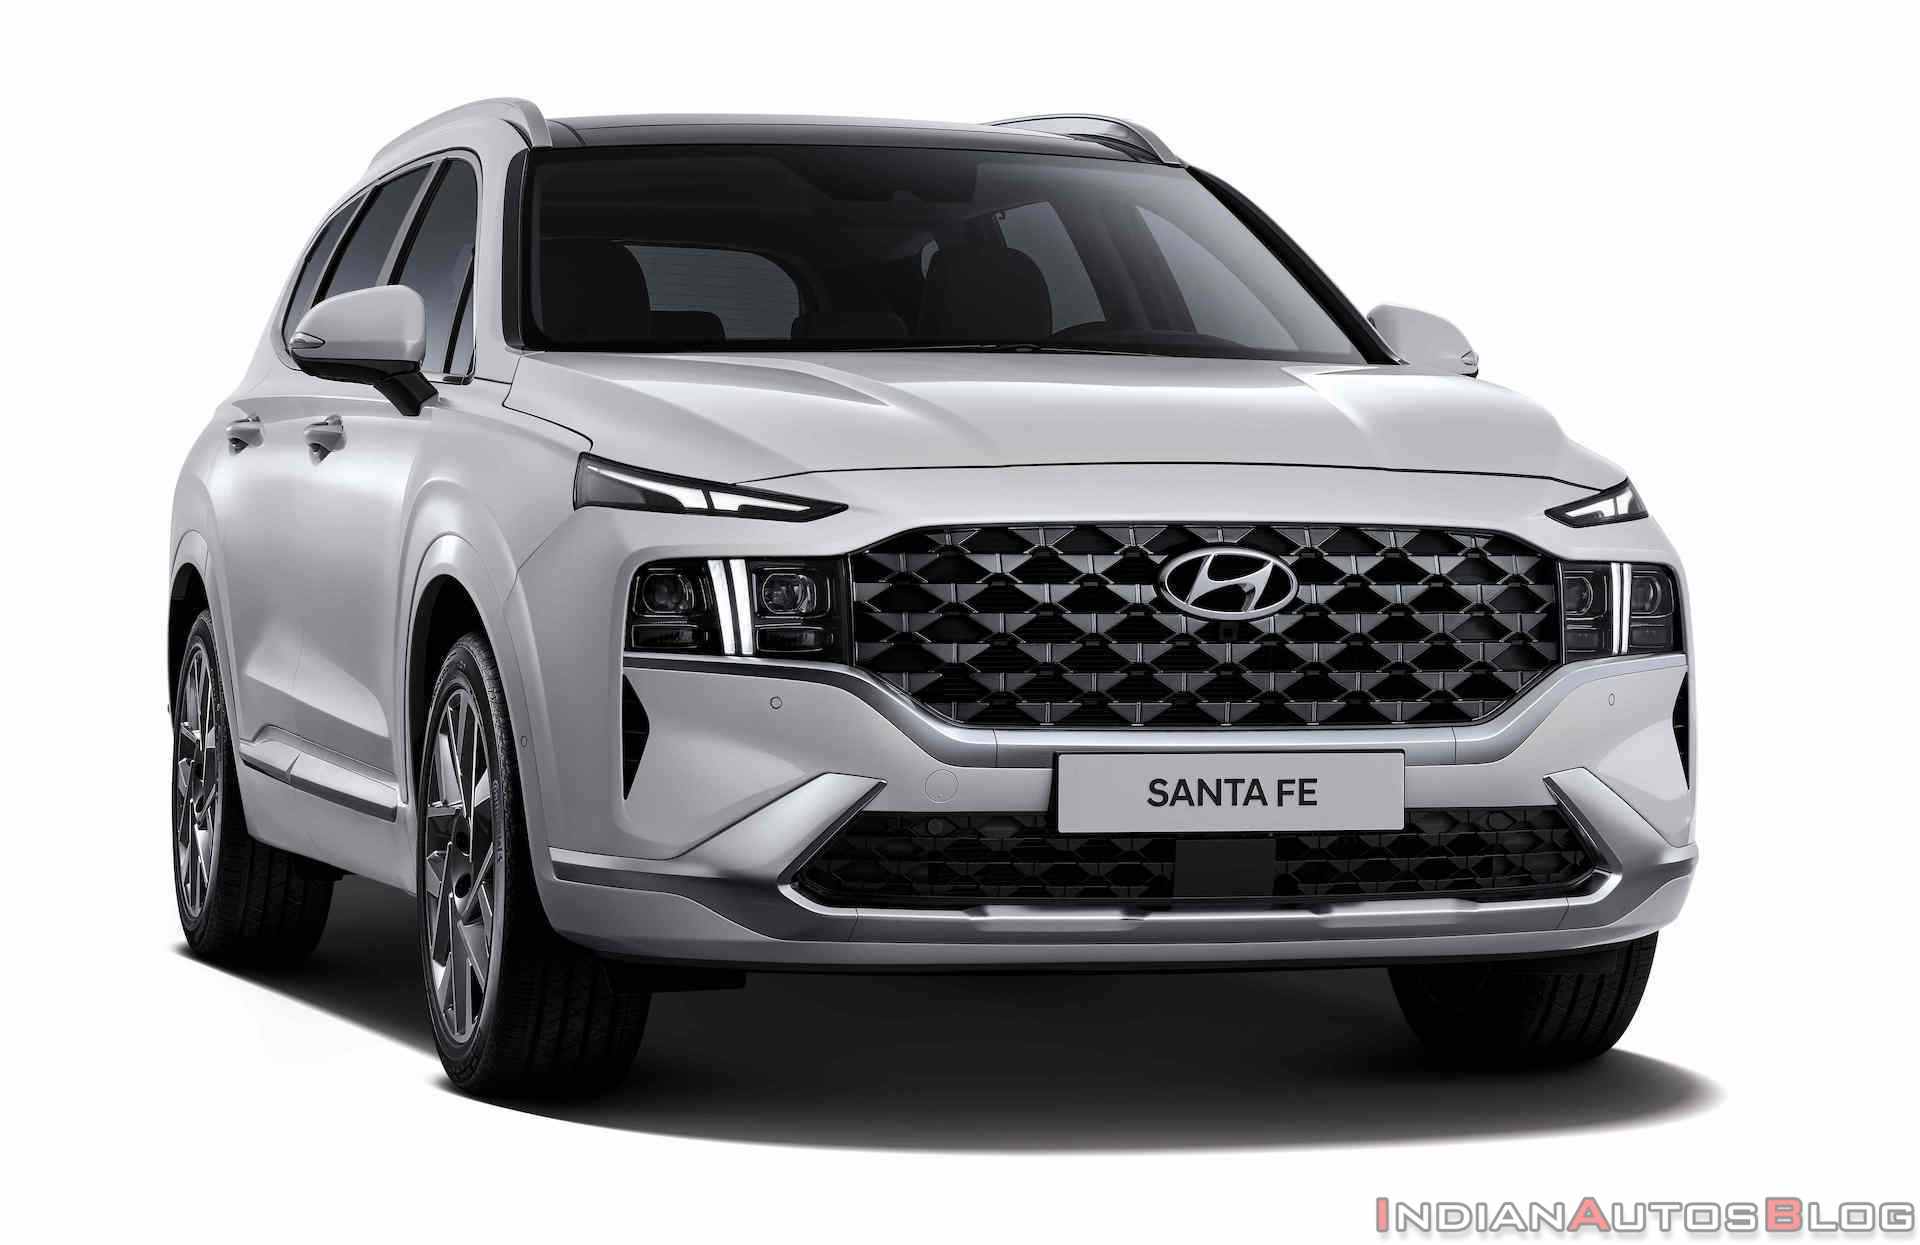 Hyundai Santa Fe breaks cover